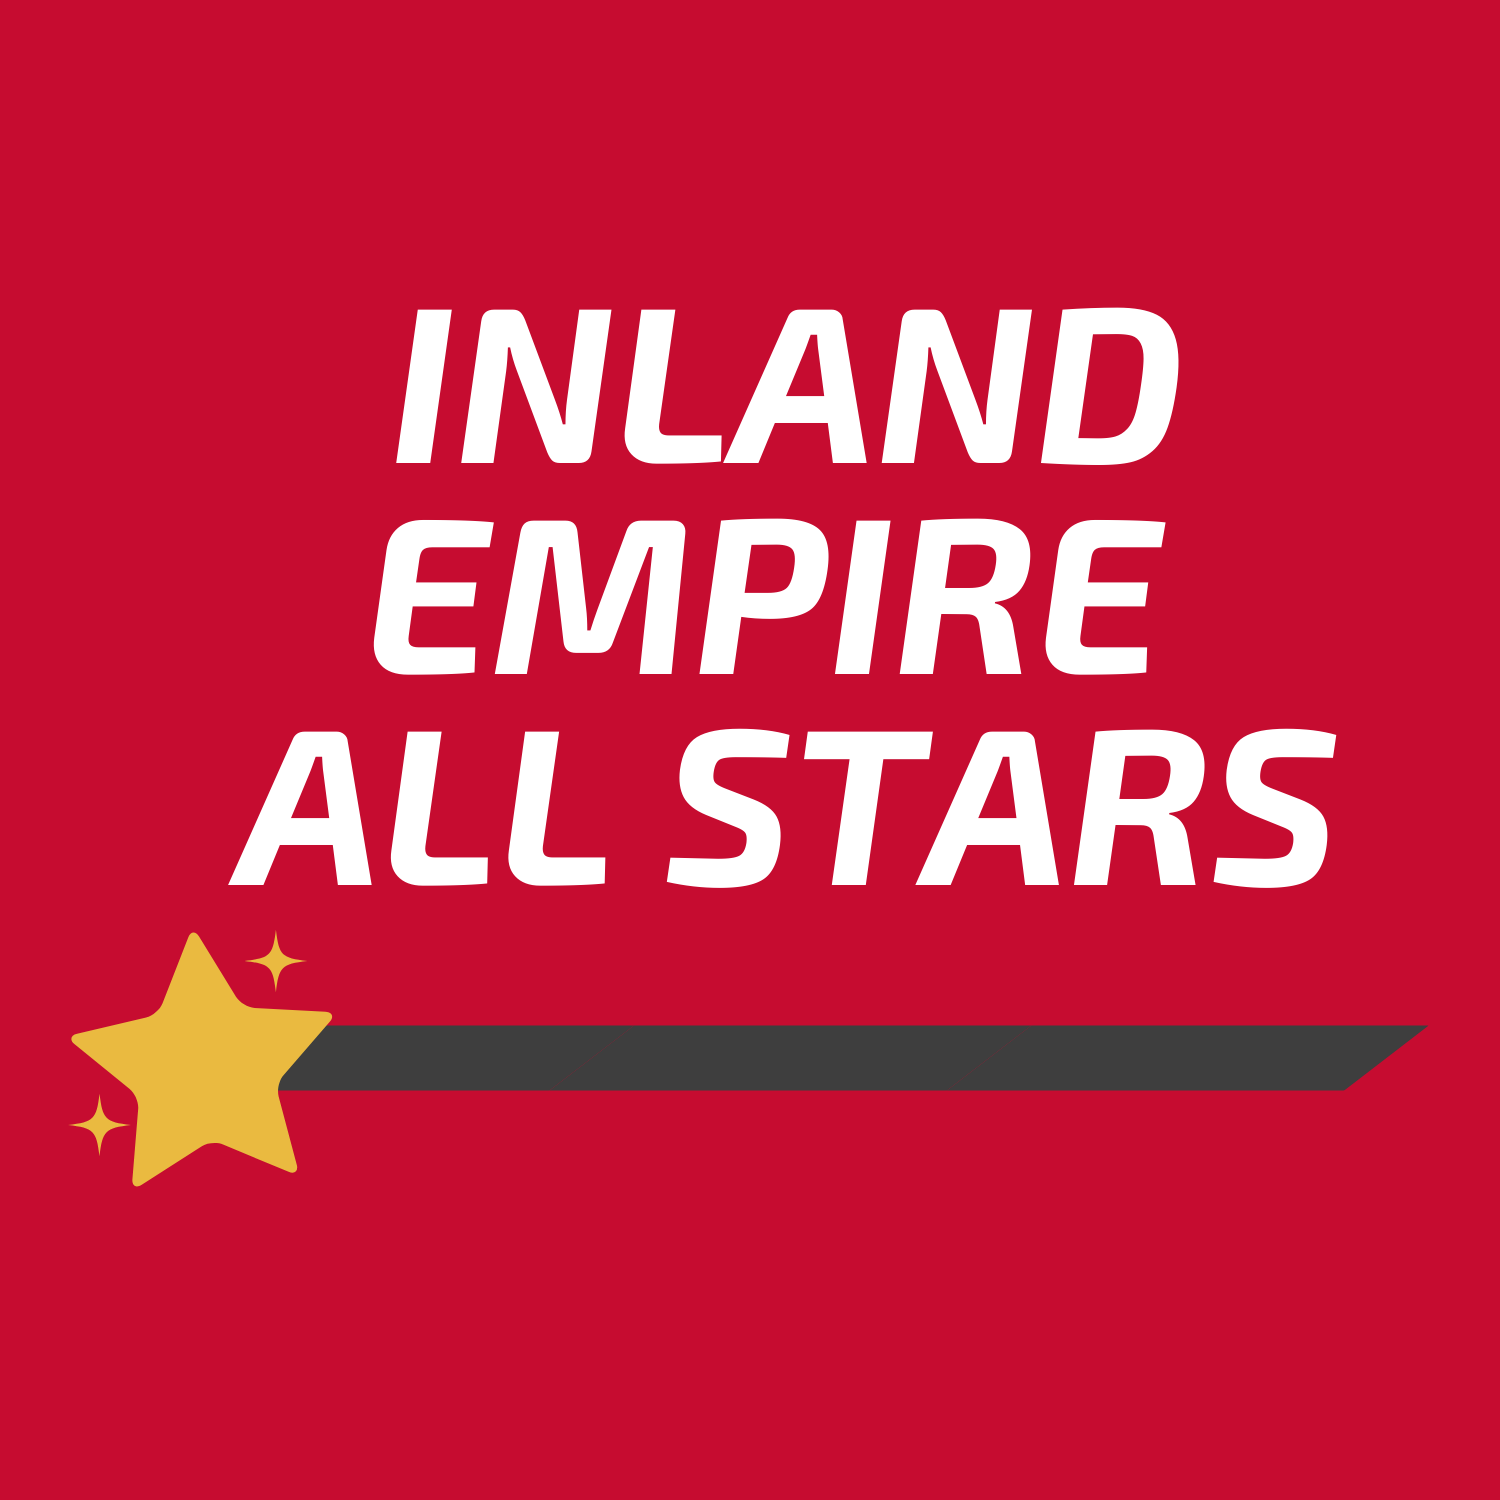 Inland Empire HS